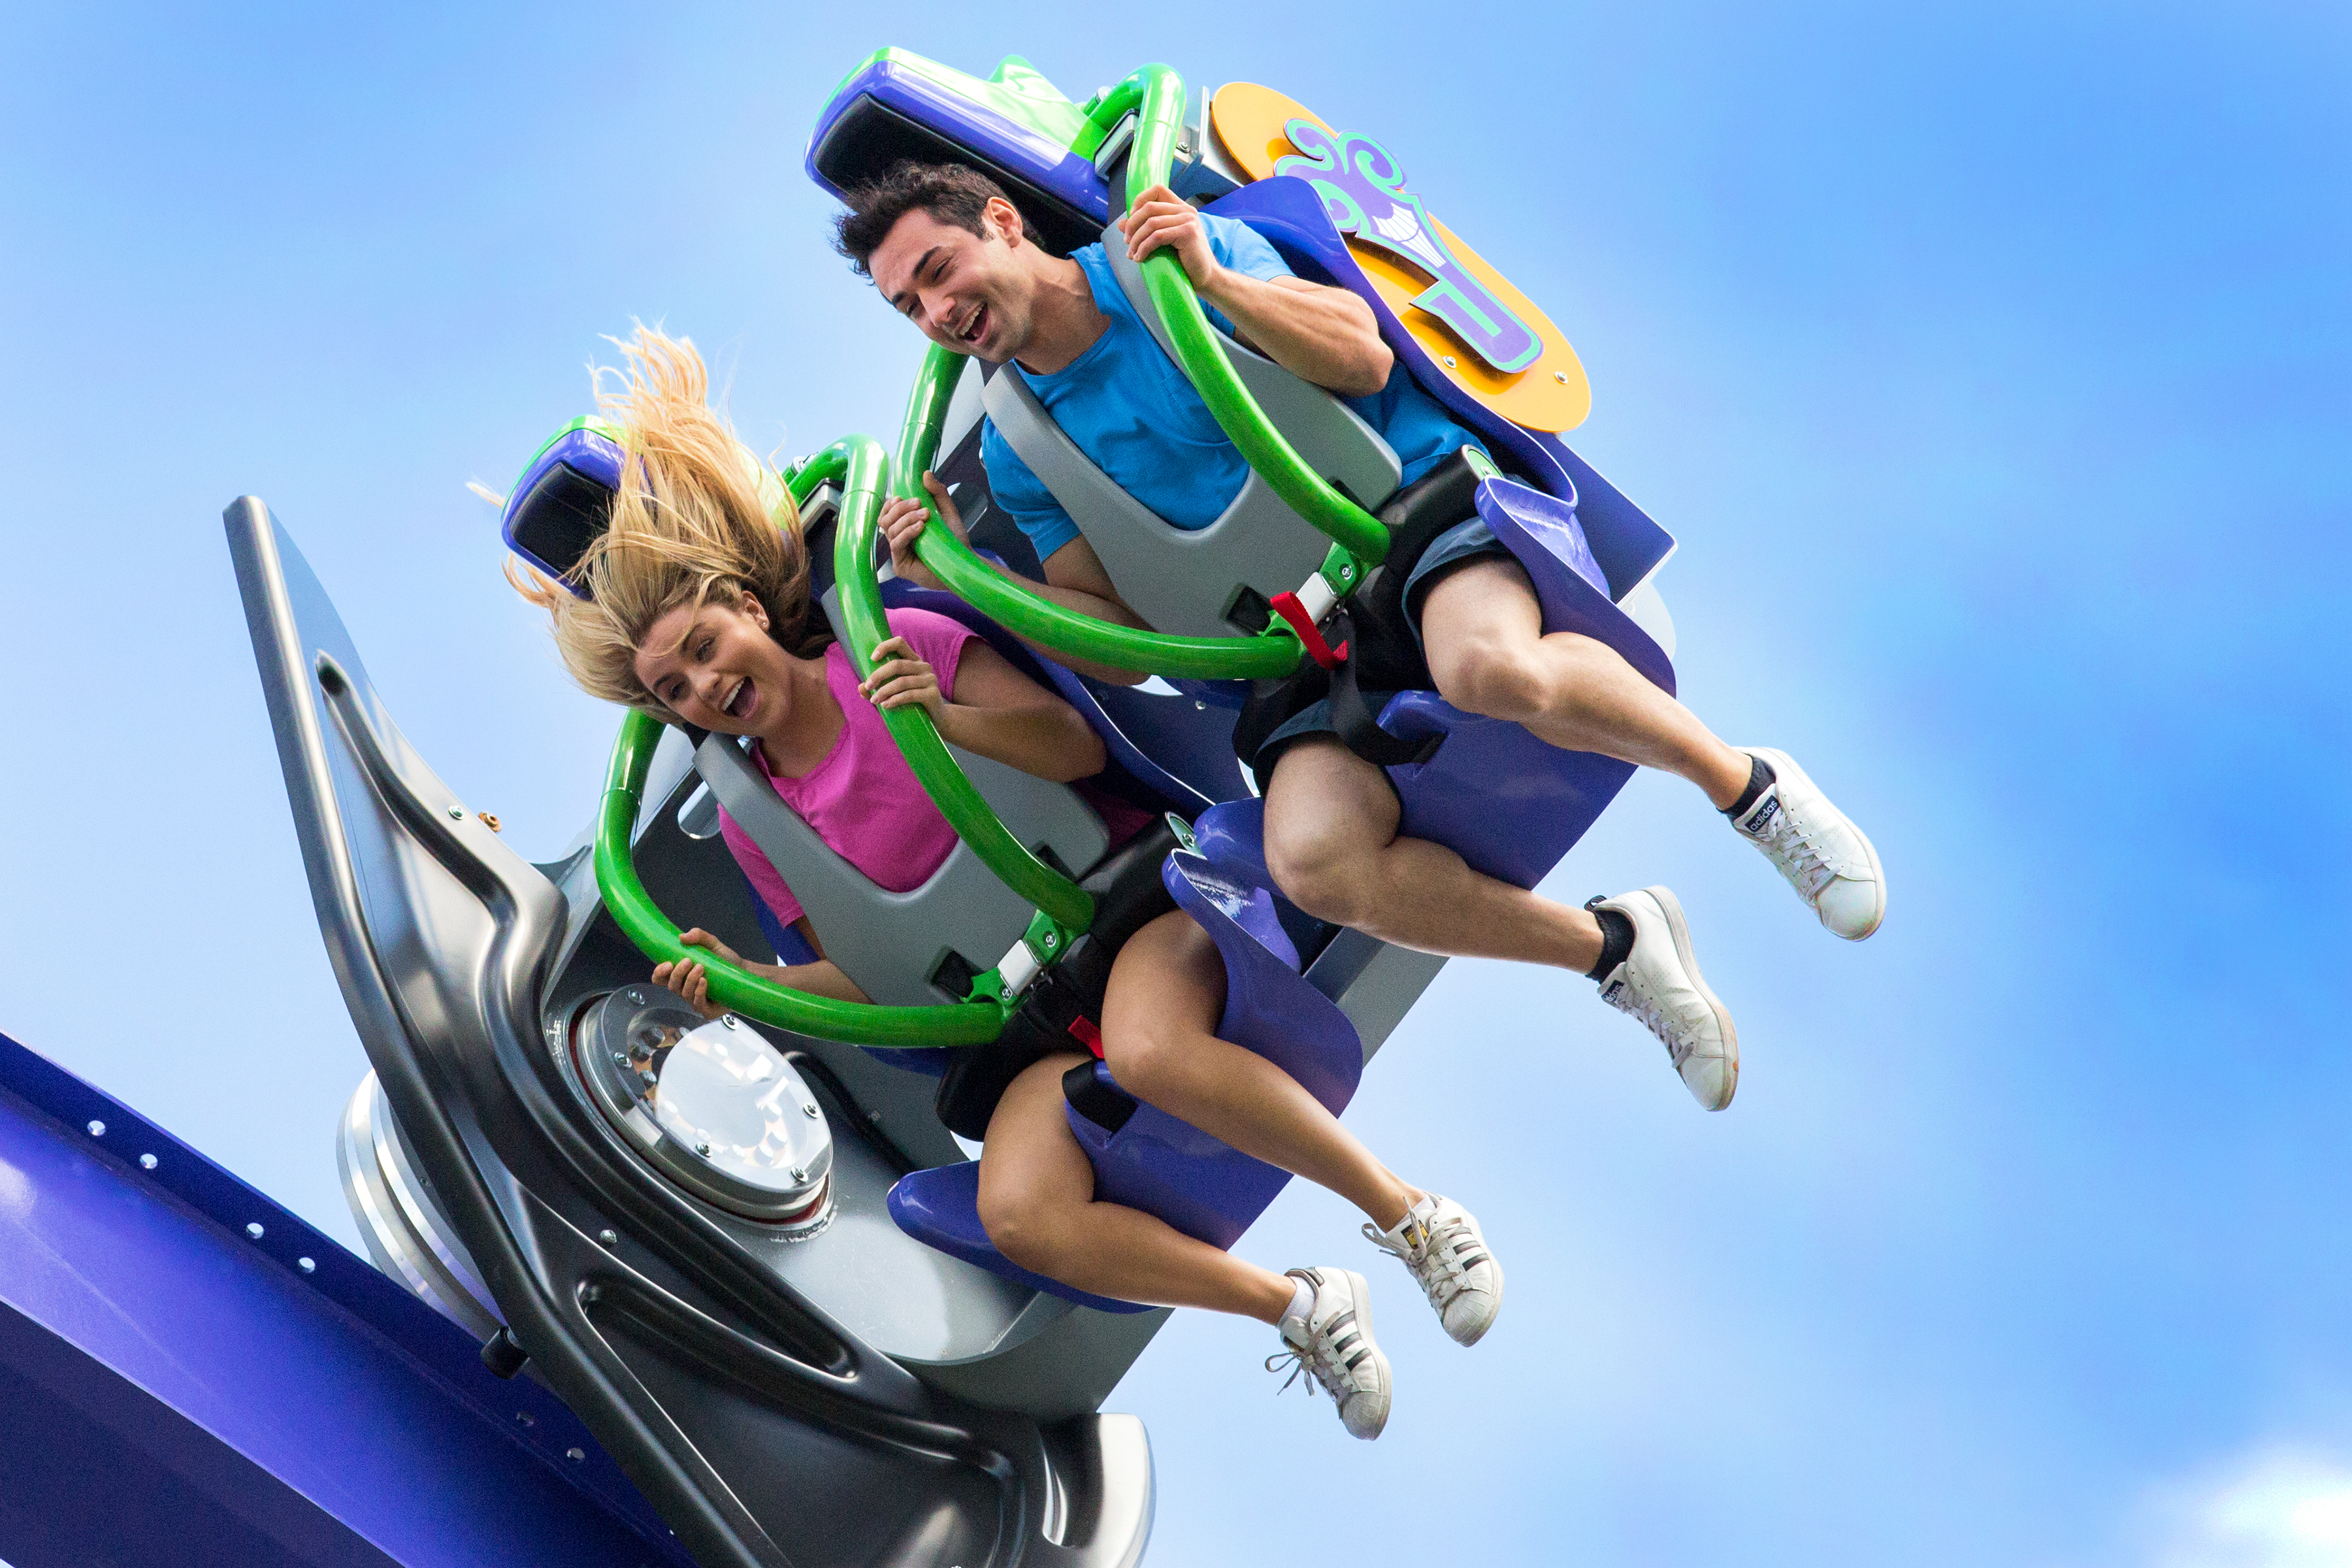 THE JOKER Free Fly Coaster flips you head-over-heels (Photo: Business Wire)